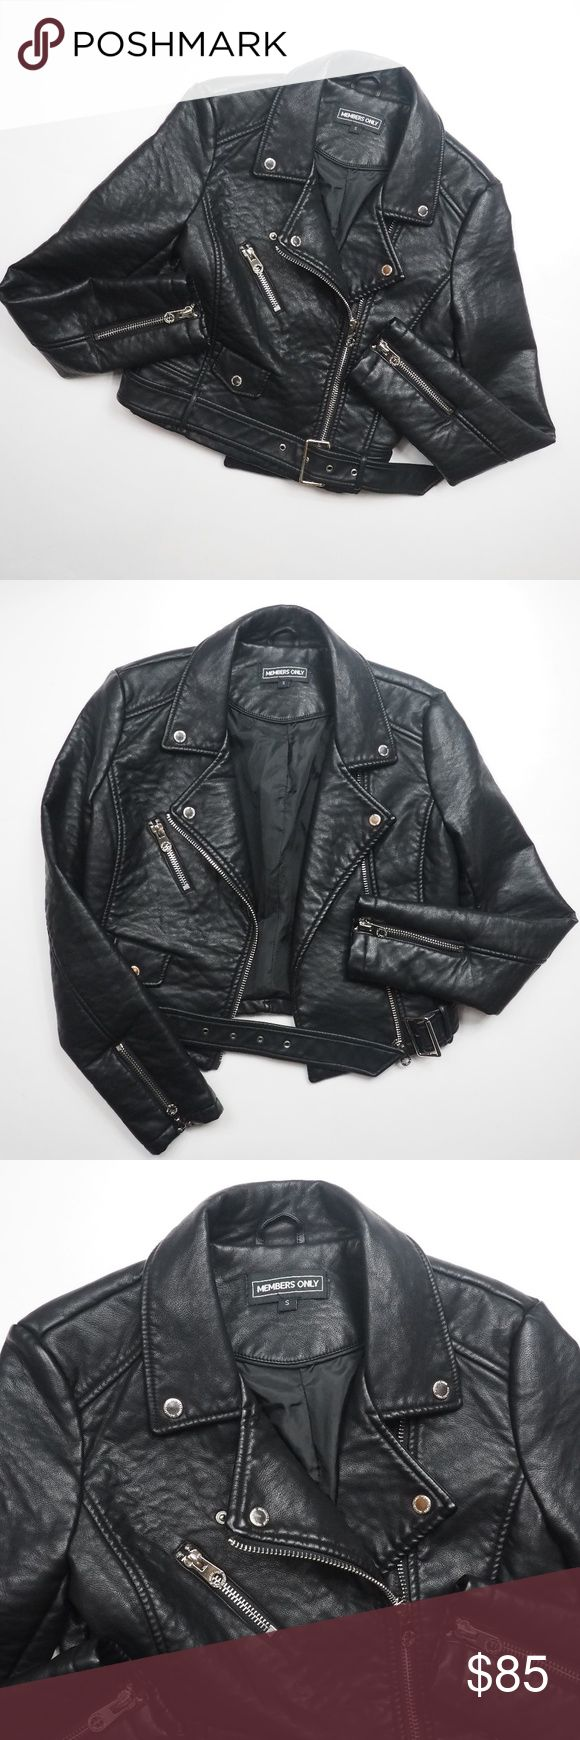 """Members Only Vegan Leather Motorcycle Jacket Small Hello! Up for sale is this Members Only Women's Size Small Vegan Leather Moto Jacket in great pre-loved condition. Please view all photos and measurements to ensure your perfect fit before purchase. Please let me know if you have any questions! :)   Great gently owned condition. Looks like It was only worn maybe a handful of times.   Material   Polyurethane Viscose   Measurements  Shoulder-Shoulder - 17""""  Top-Bottom - 20""""  Underarm-Underarm…"""